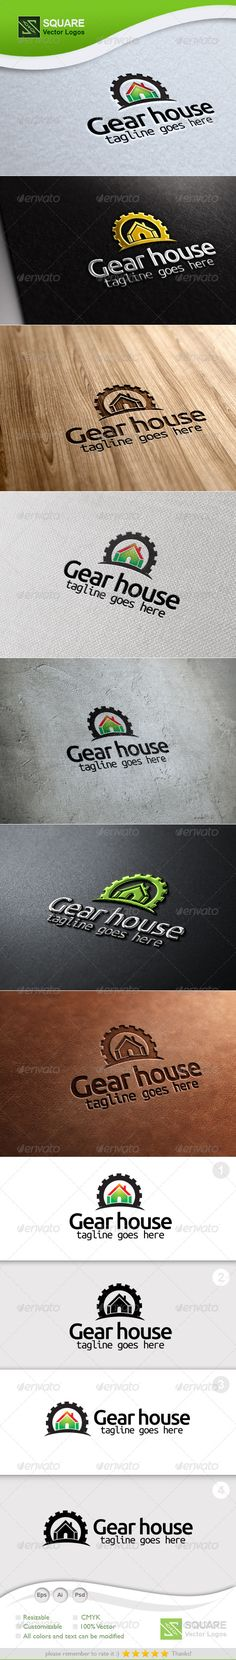 Gear, House Vector Logo Template #GraphicRiver File Description This is custom logo template. Illustrator (AI), Photoshop (PSD), Vector (EPS) logo files included in this download. You can customize to your own branding. All colors and text can be modified. It is suitable for industry, work, mechanic, home, house, construction, housing, gear related logos. FEATURES The Logo Is 100% Vector 100% Customizable Fully Layered Logo Template CMYK Gradient version High Quality AI, EPS, PSD files All…